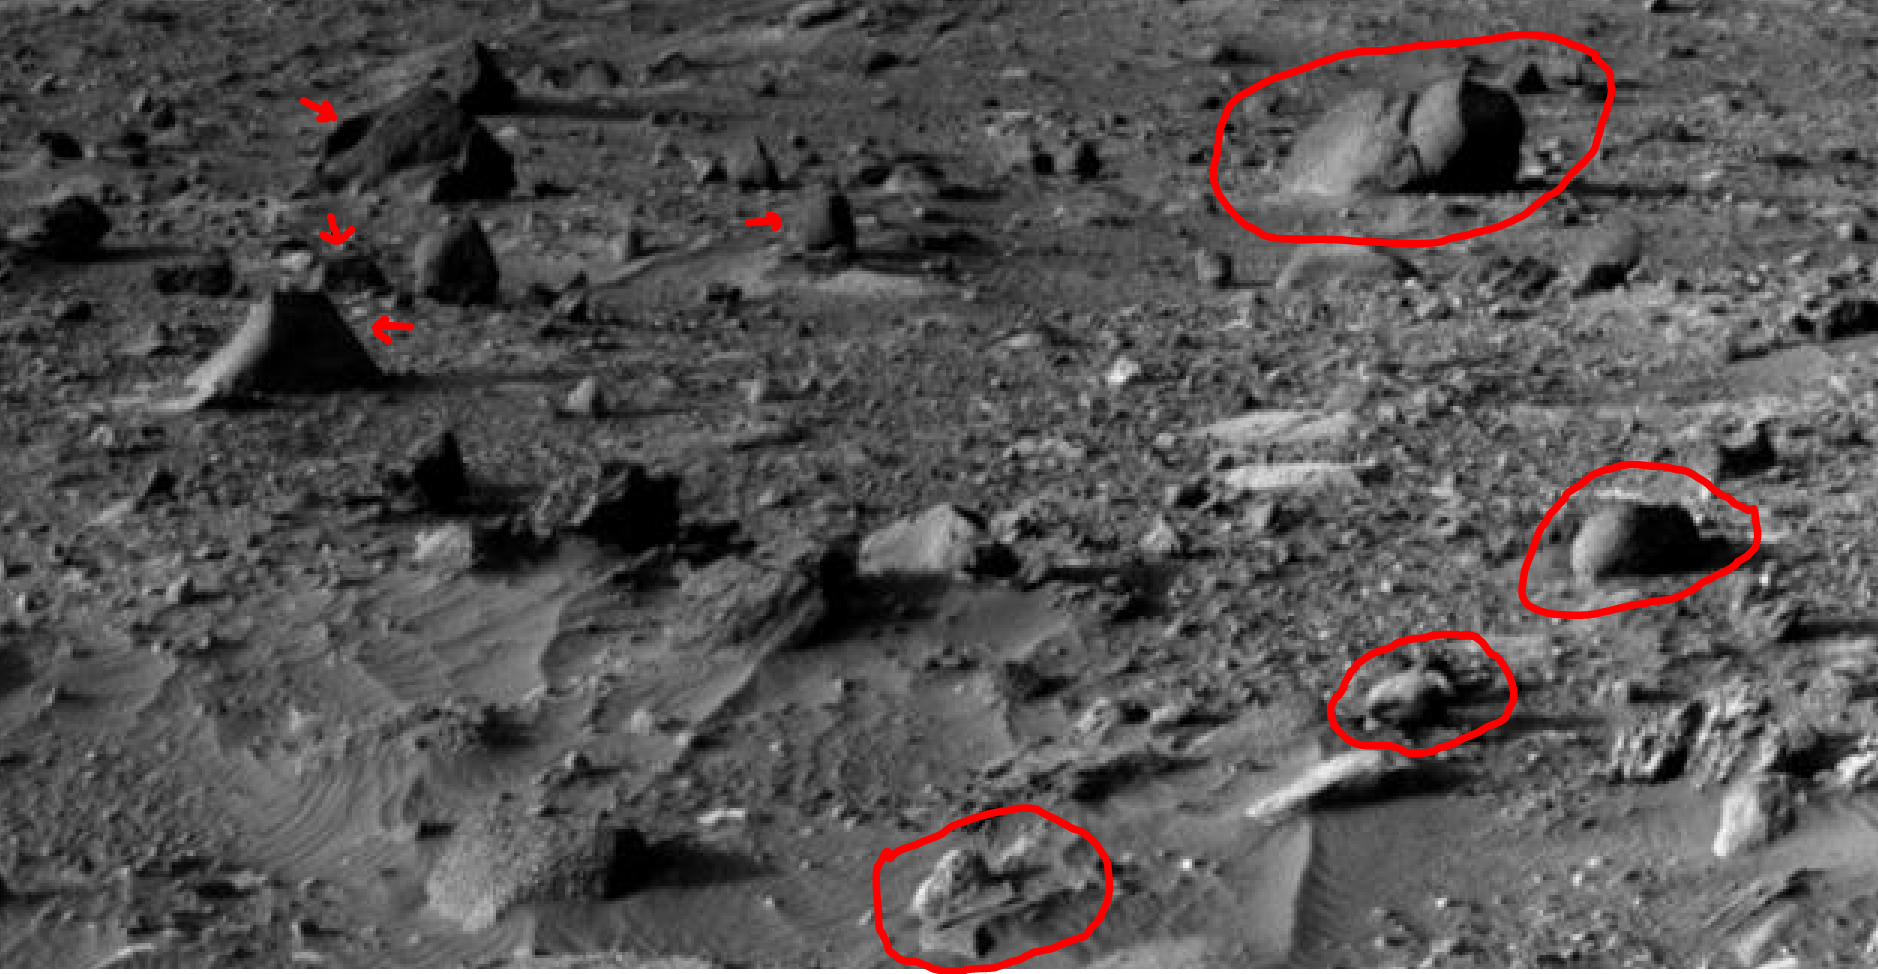 mars sol 1405 anomaly artifacts 14a was life on mars